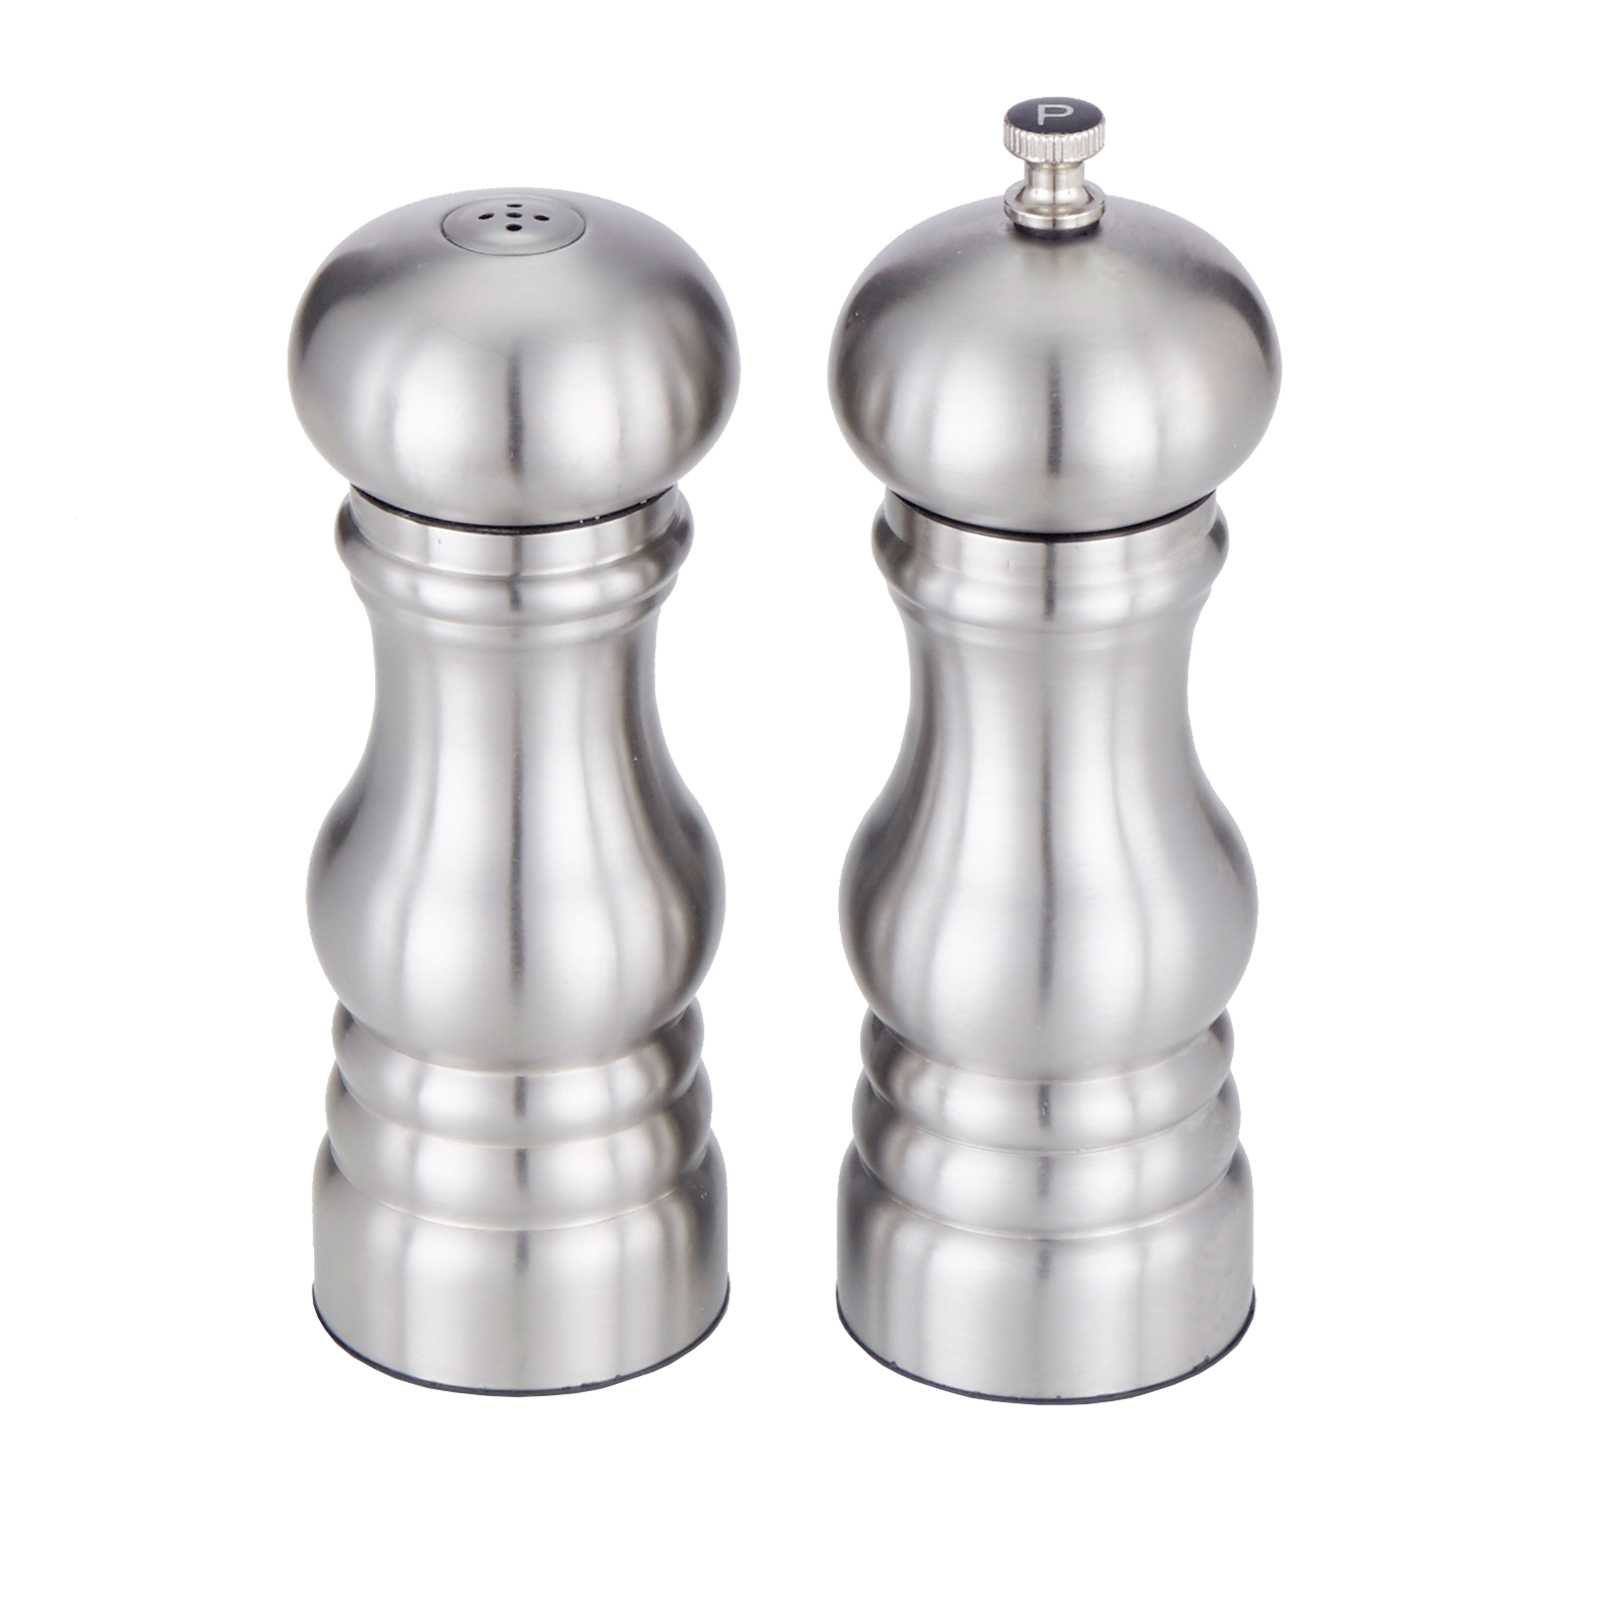 American Metalcraft PMSS62 salt / pepper shaker & mill set